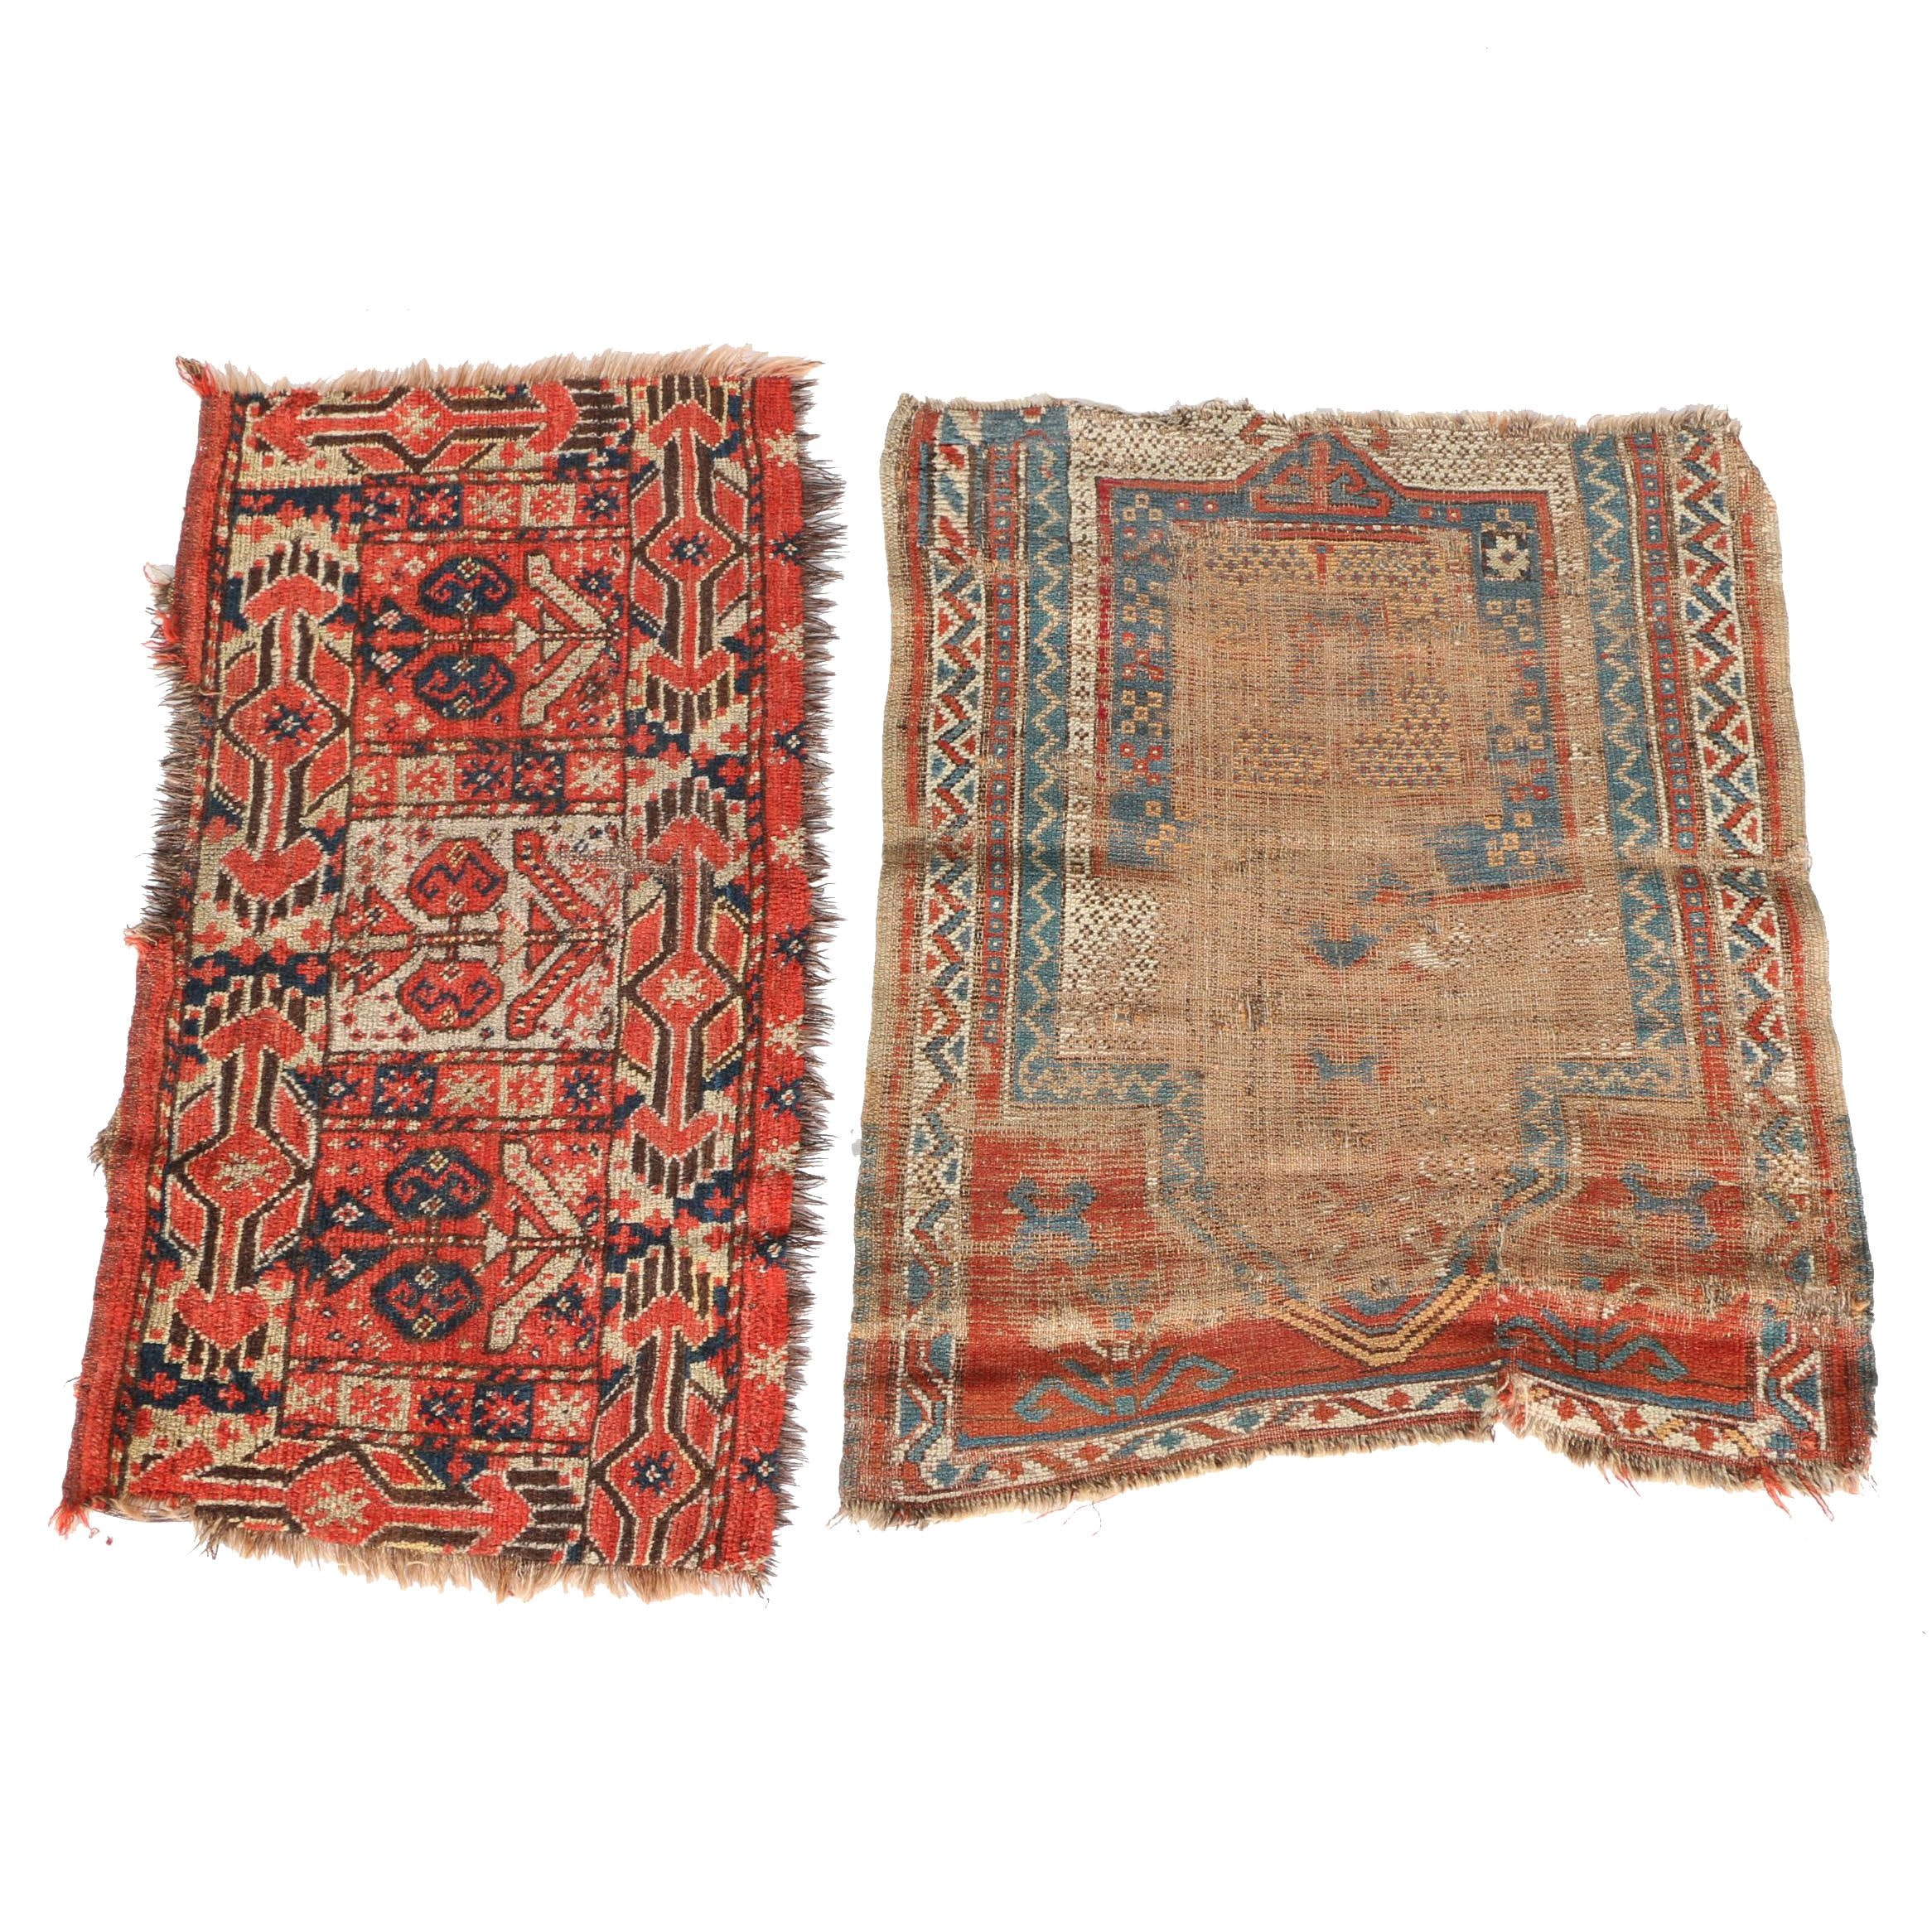 Hand-Knotted Antique Wool Rugs